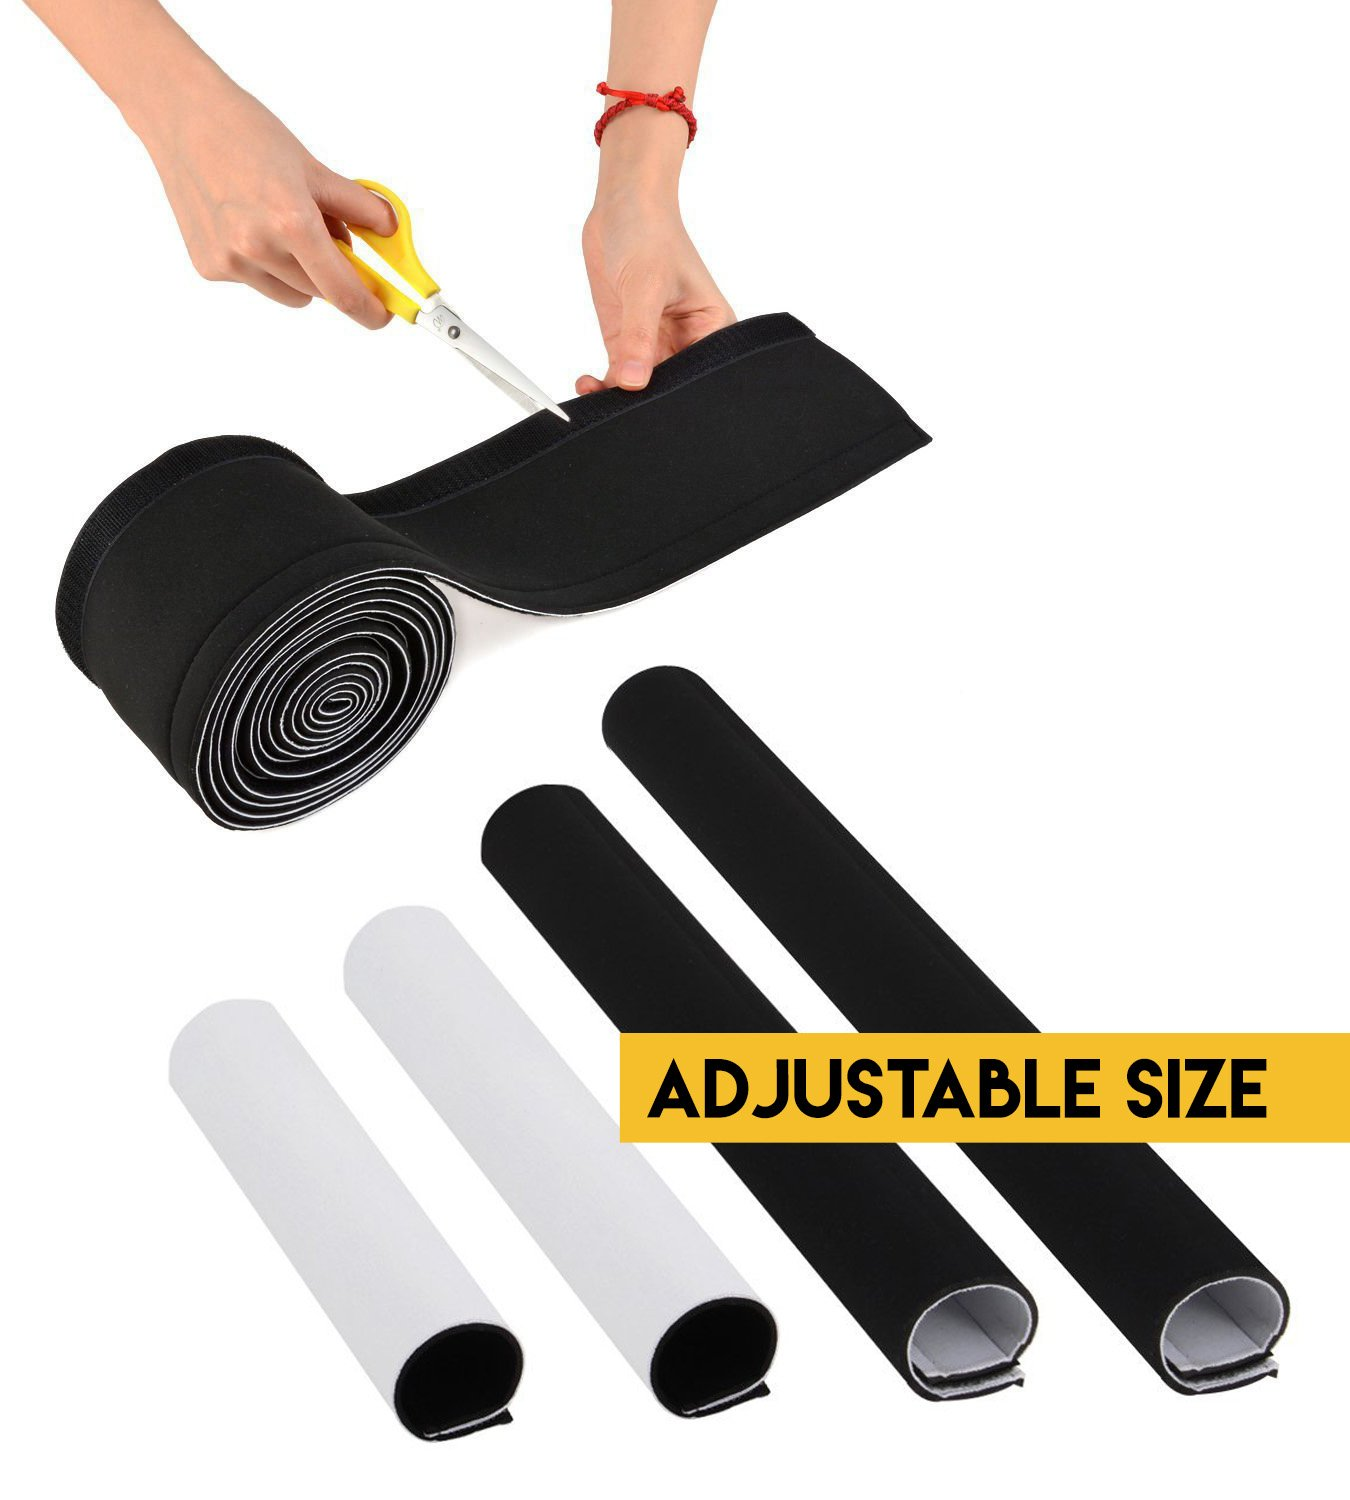 Adjustable Cable Organizer Sleeves (2 Pack x 35'') by Astorn. Reversible Black & White Neoprene Cord Organizer Sleeve Wraps. Cord Protector from Pets, Hiding Wires by Astorn (Image #2)